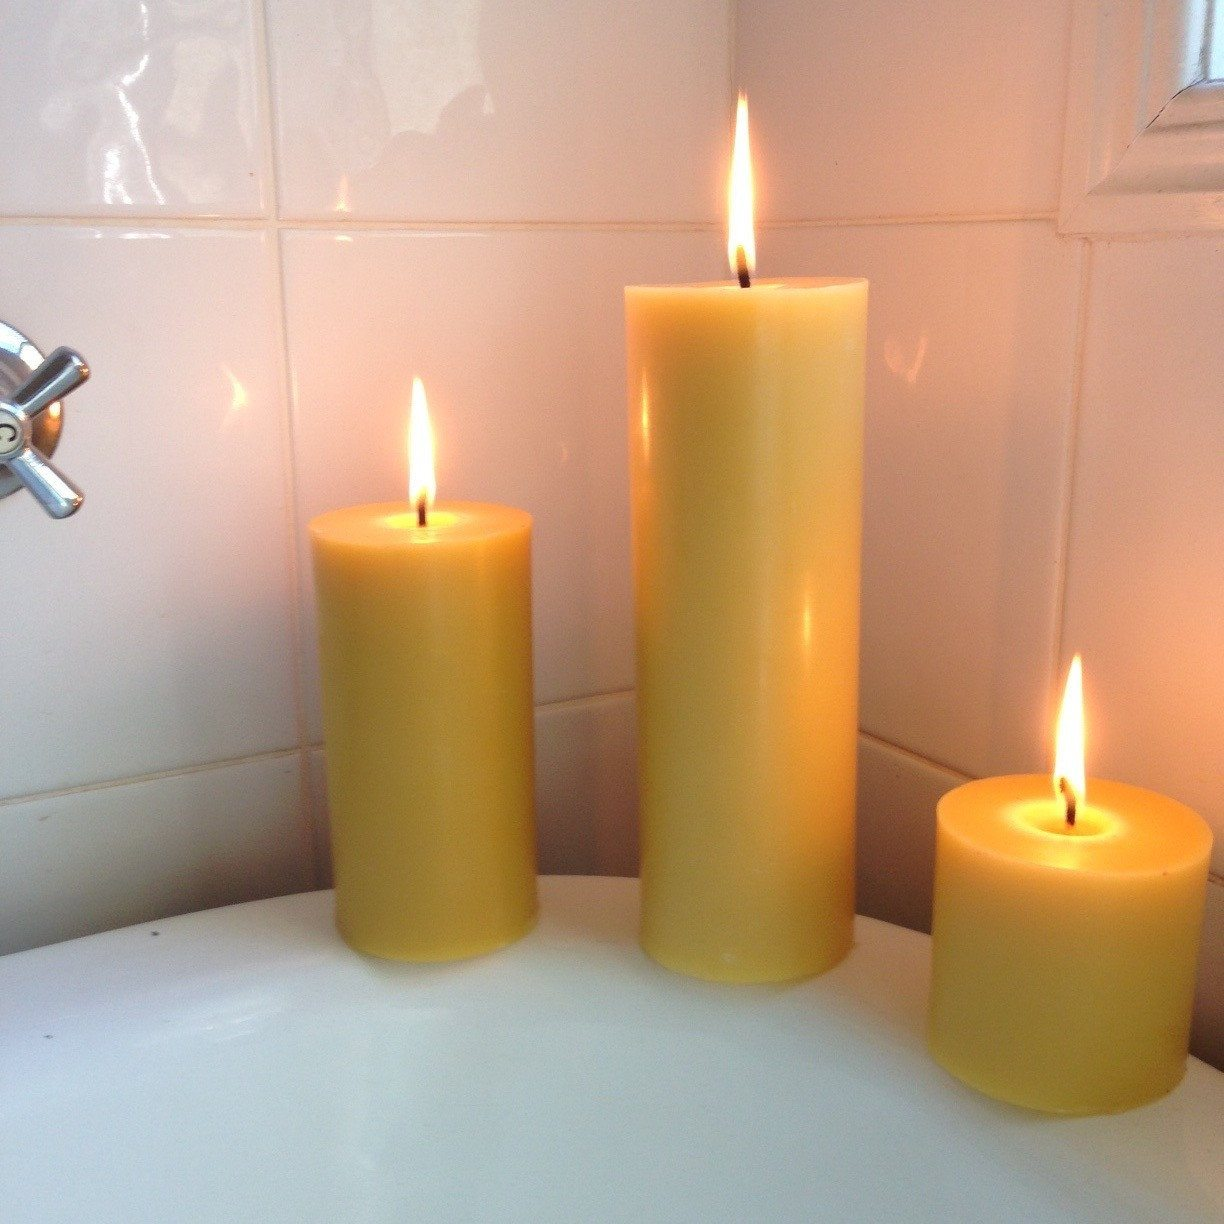 Happy flame long burning solid candle spirit of byron bay candles made from australian